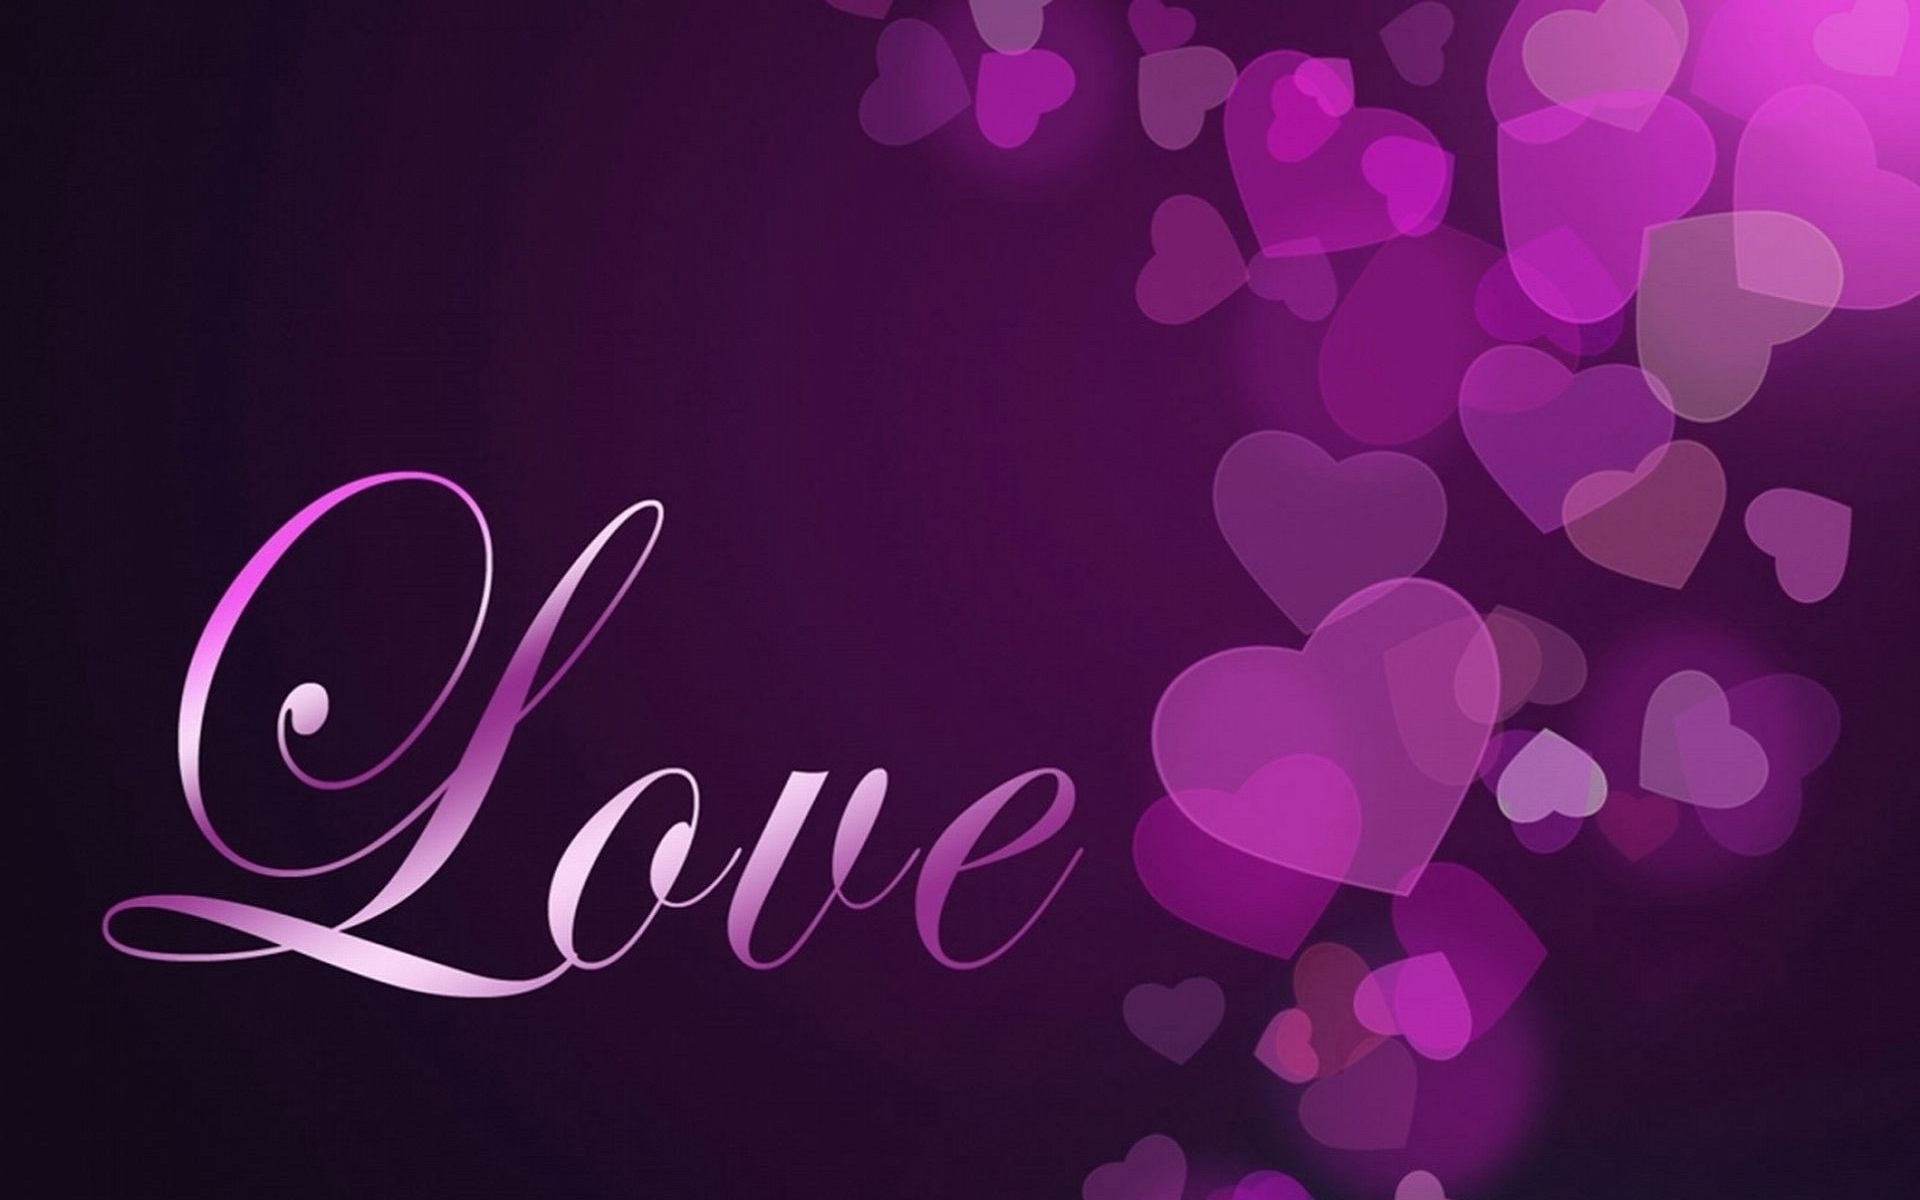 Love Theme HD Wallpaper